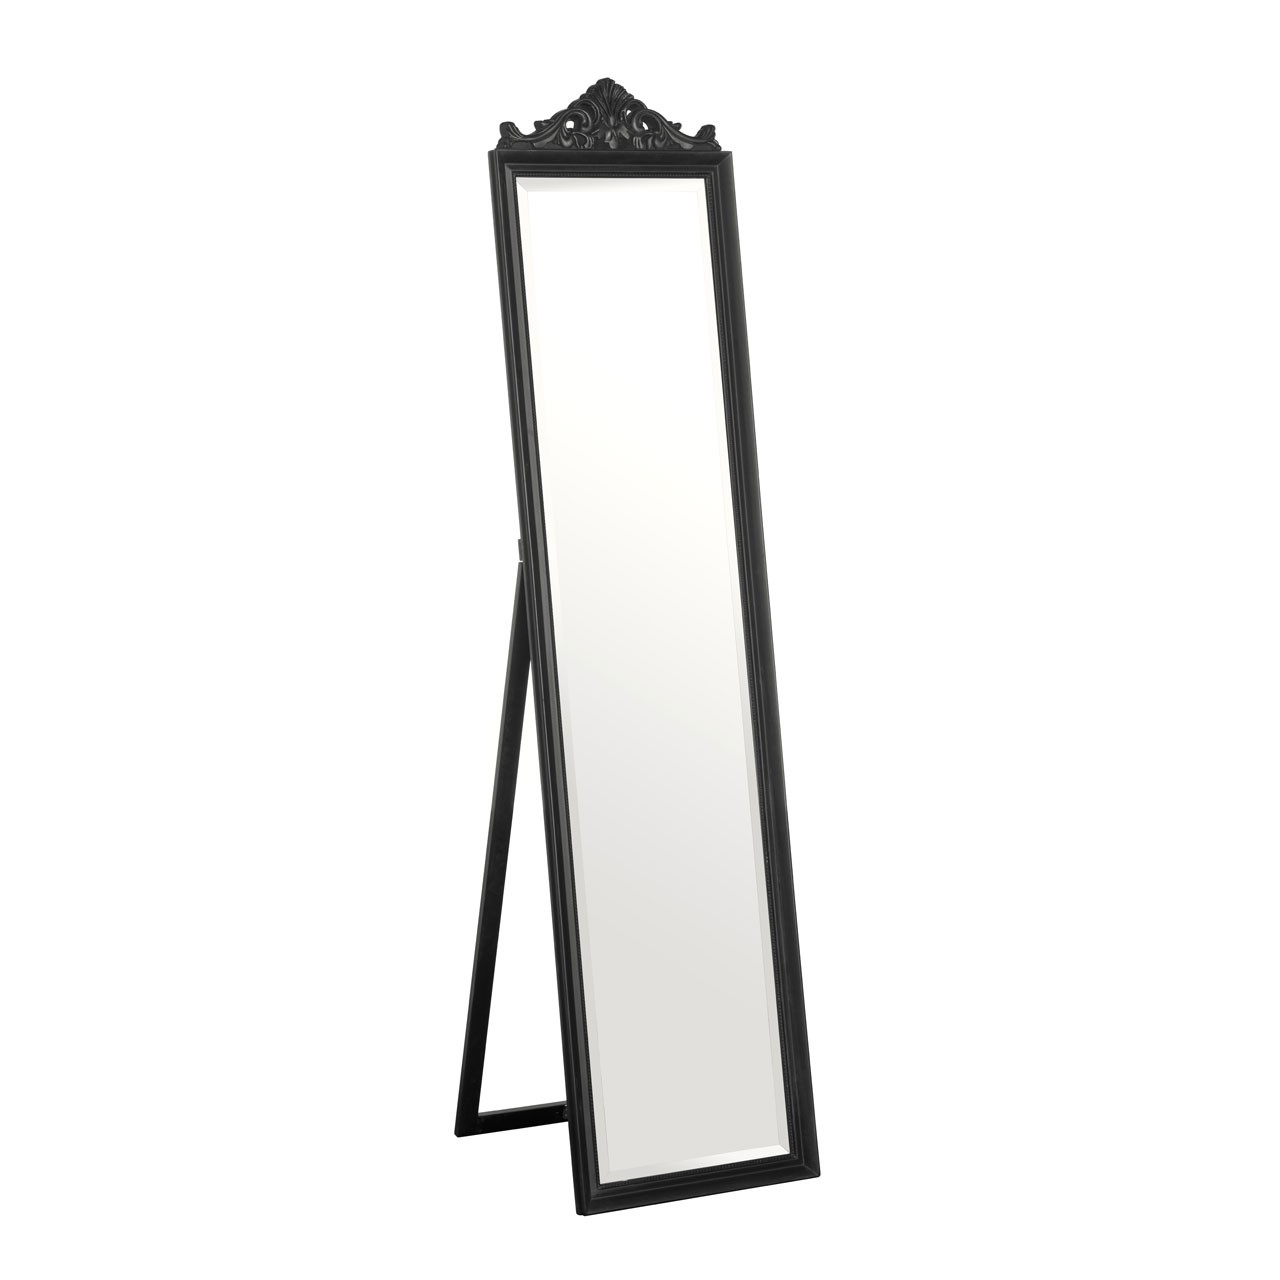 Prime Furnishing Boudoir Floorstanding Mirror - Matt Black